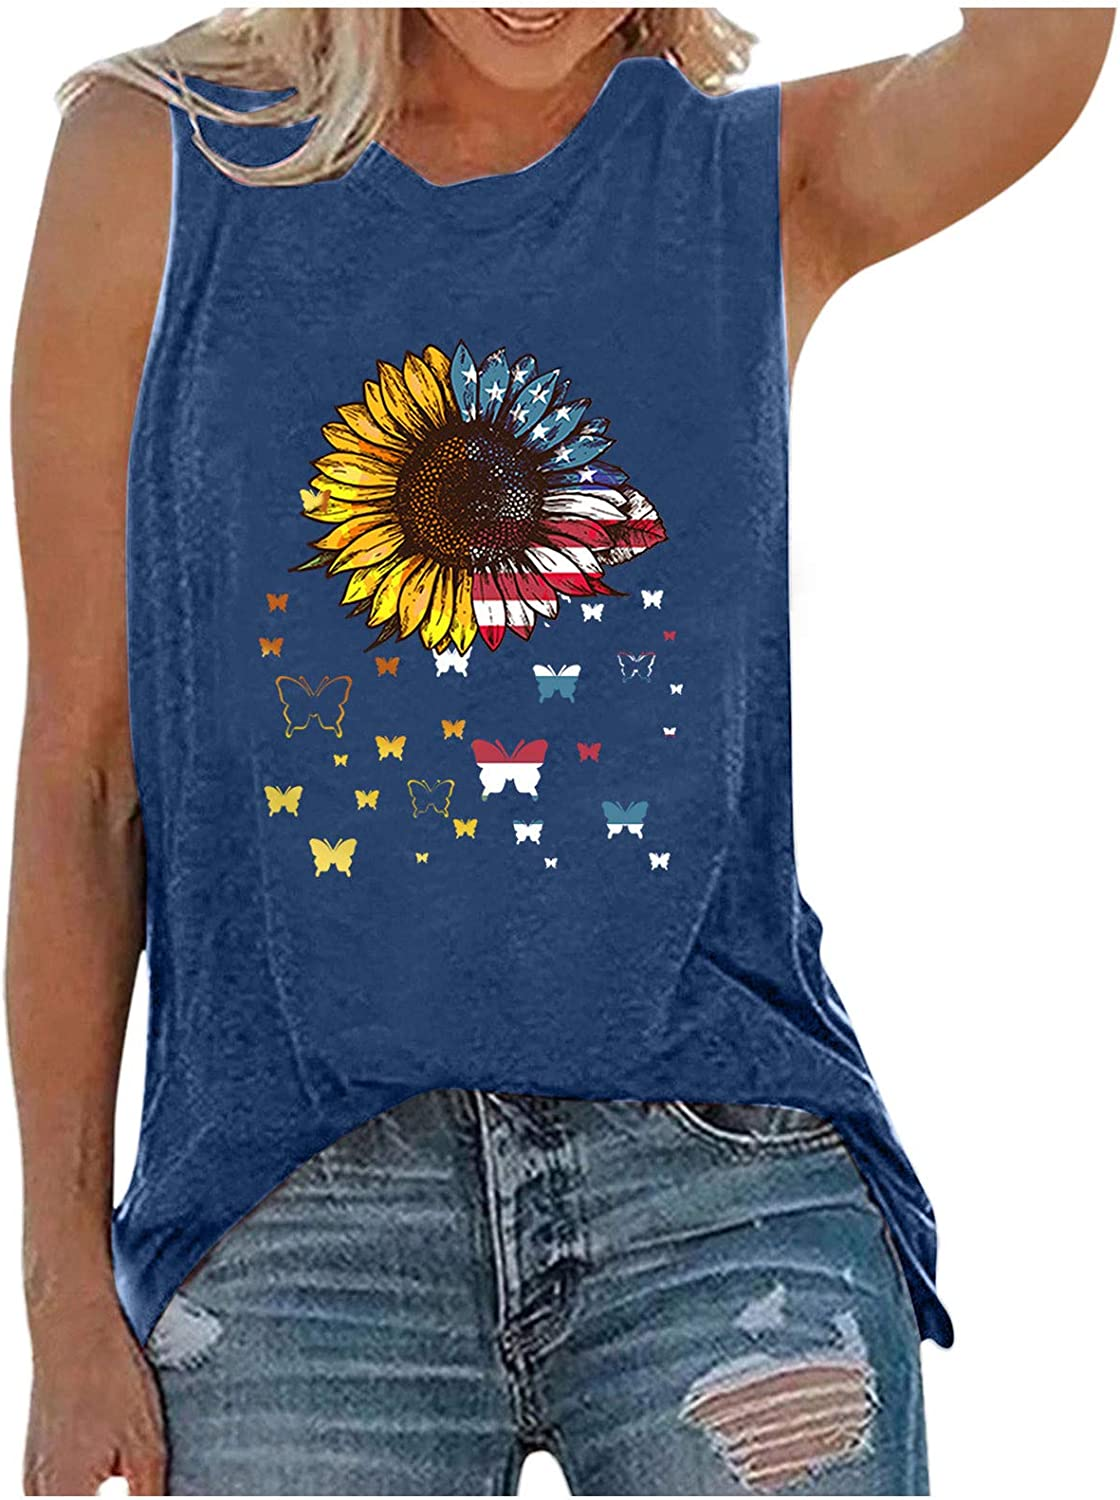 Summer Shirts for Women,Womens Summer Tank Tops Crew Neck Sleeveless Sunflower Cute Printed Casual Loose Fit Tee Shirts